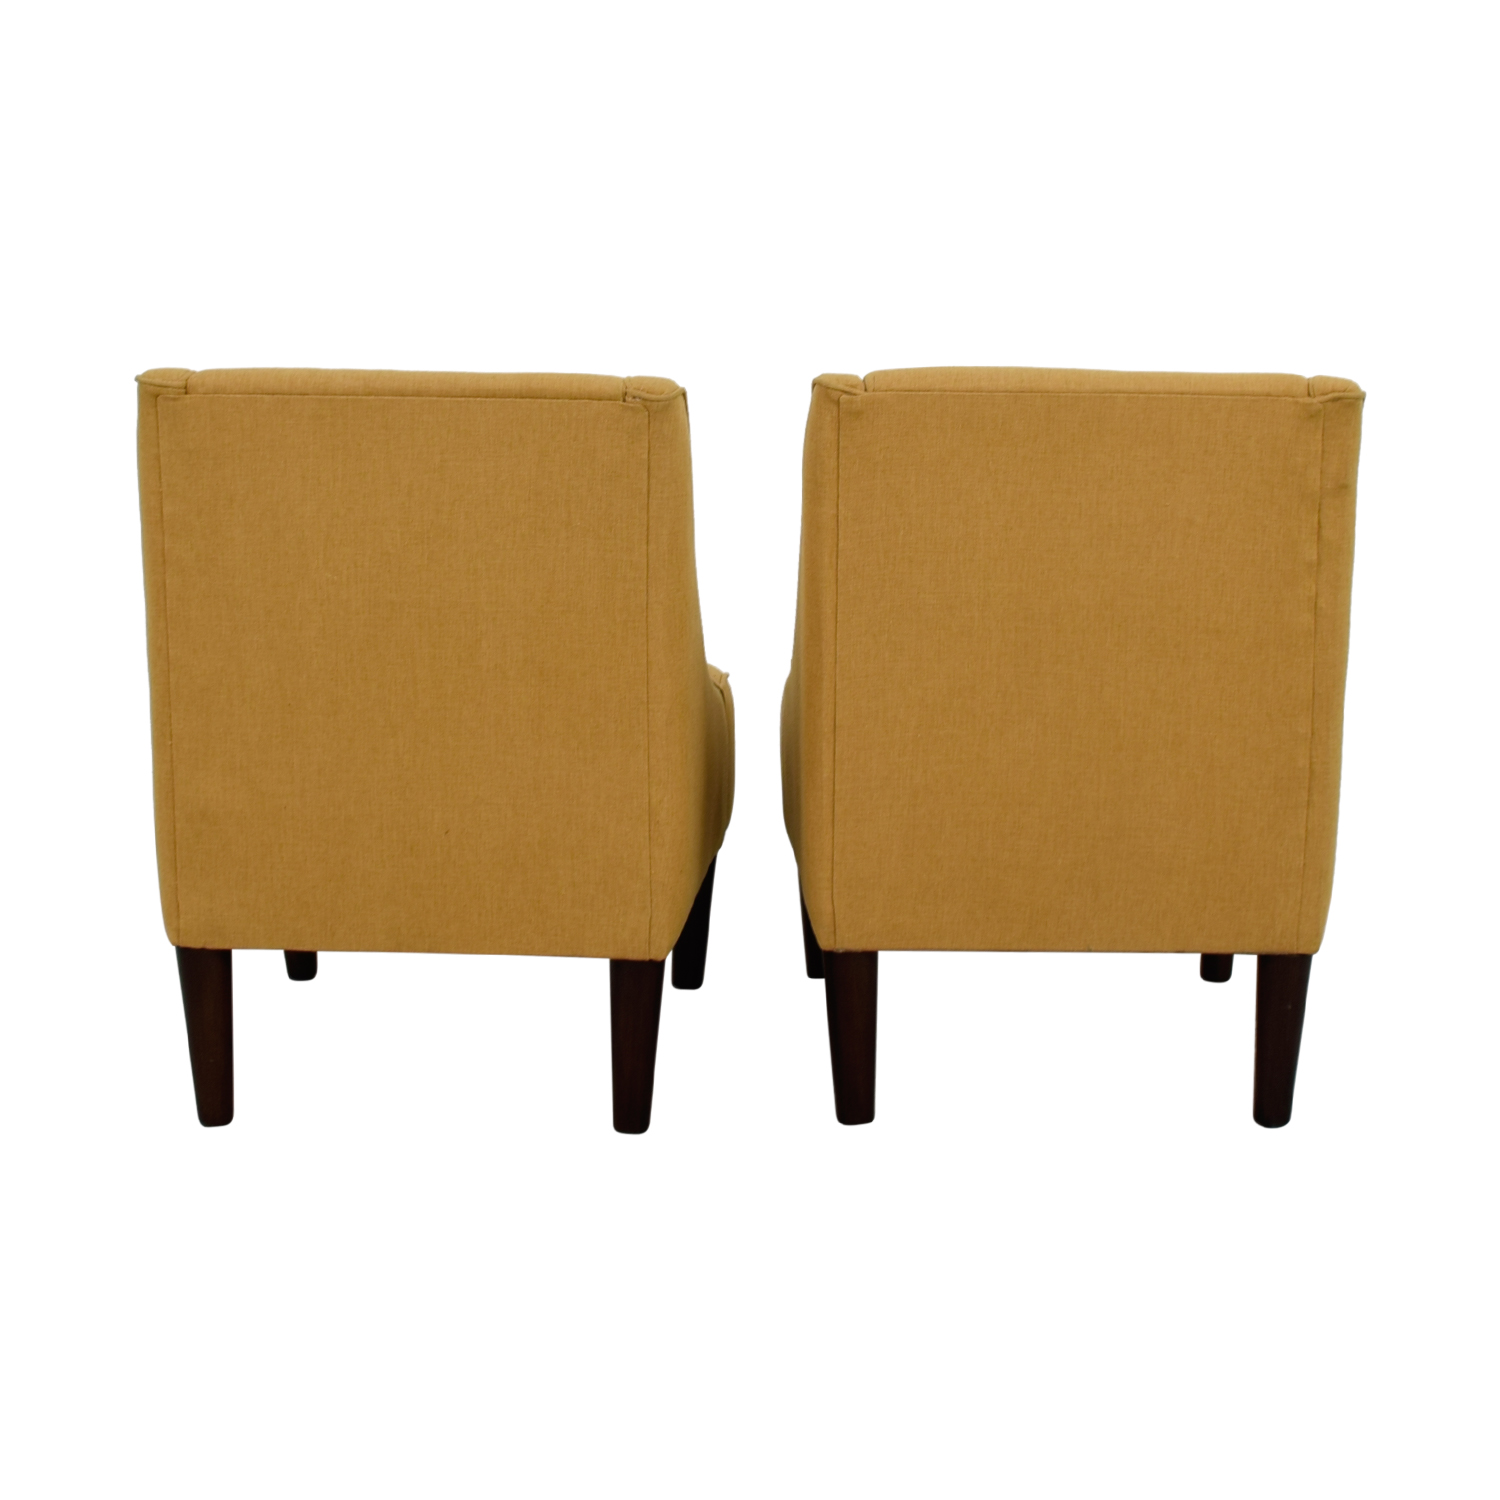 Thomas Paul Thomas Paul Mustard Tufted Accent Chairs second hand